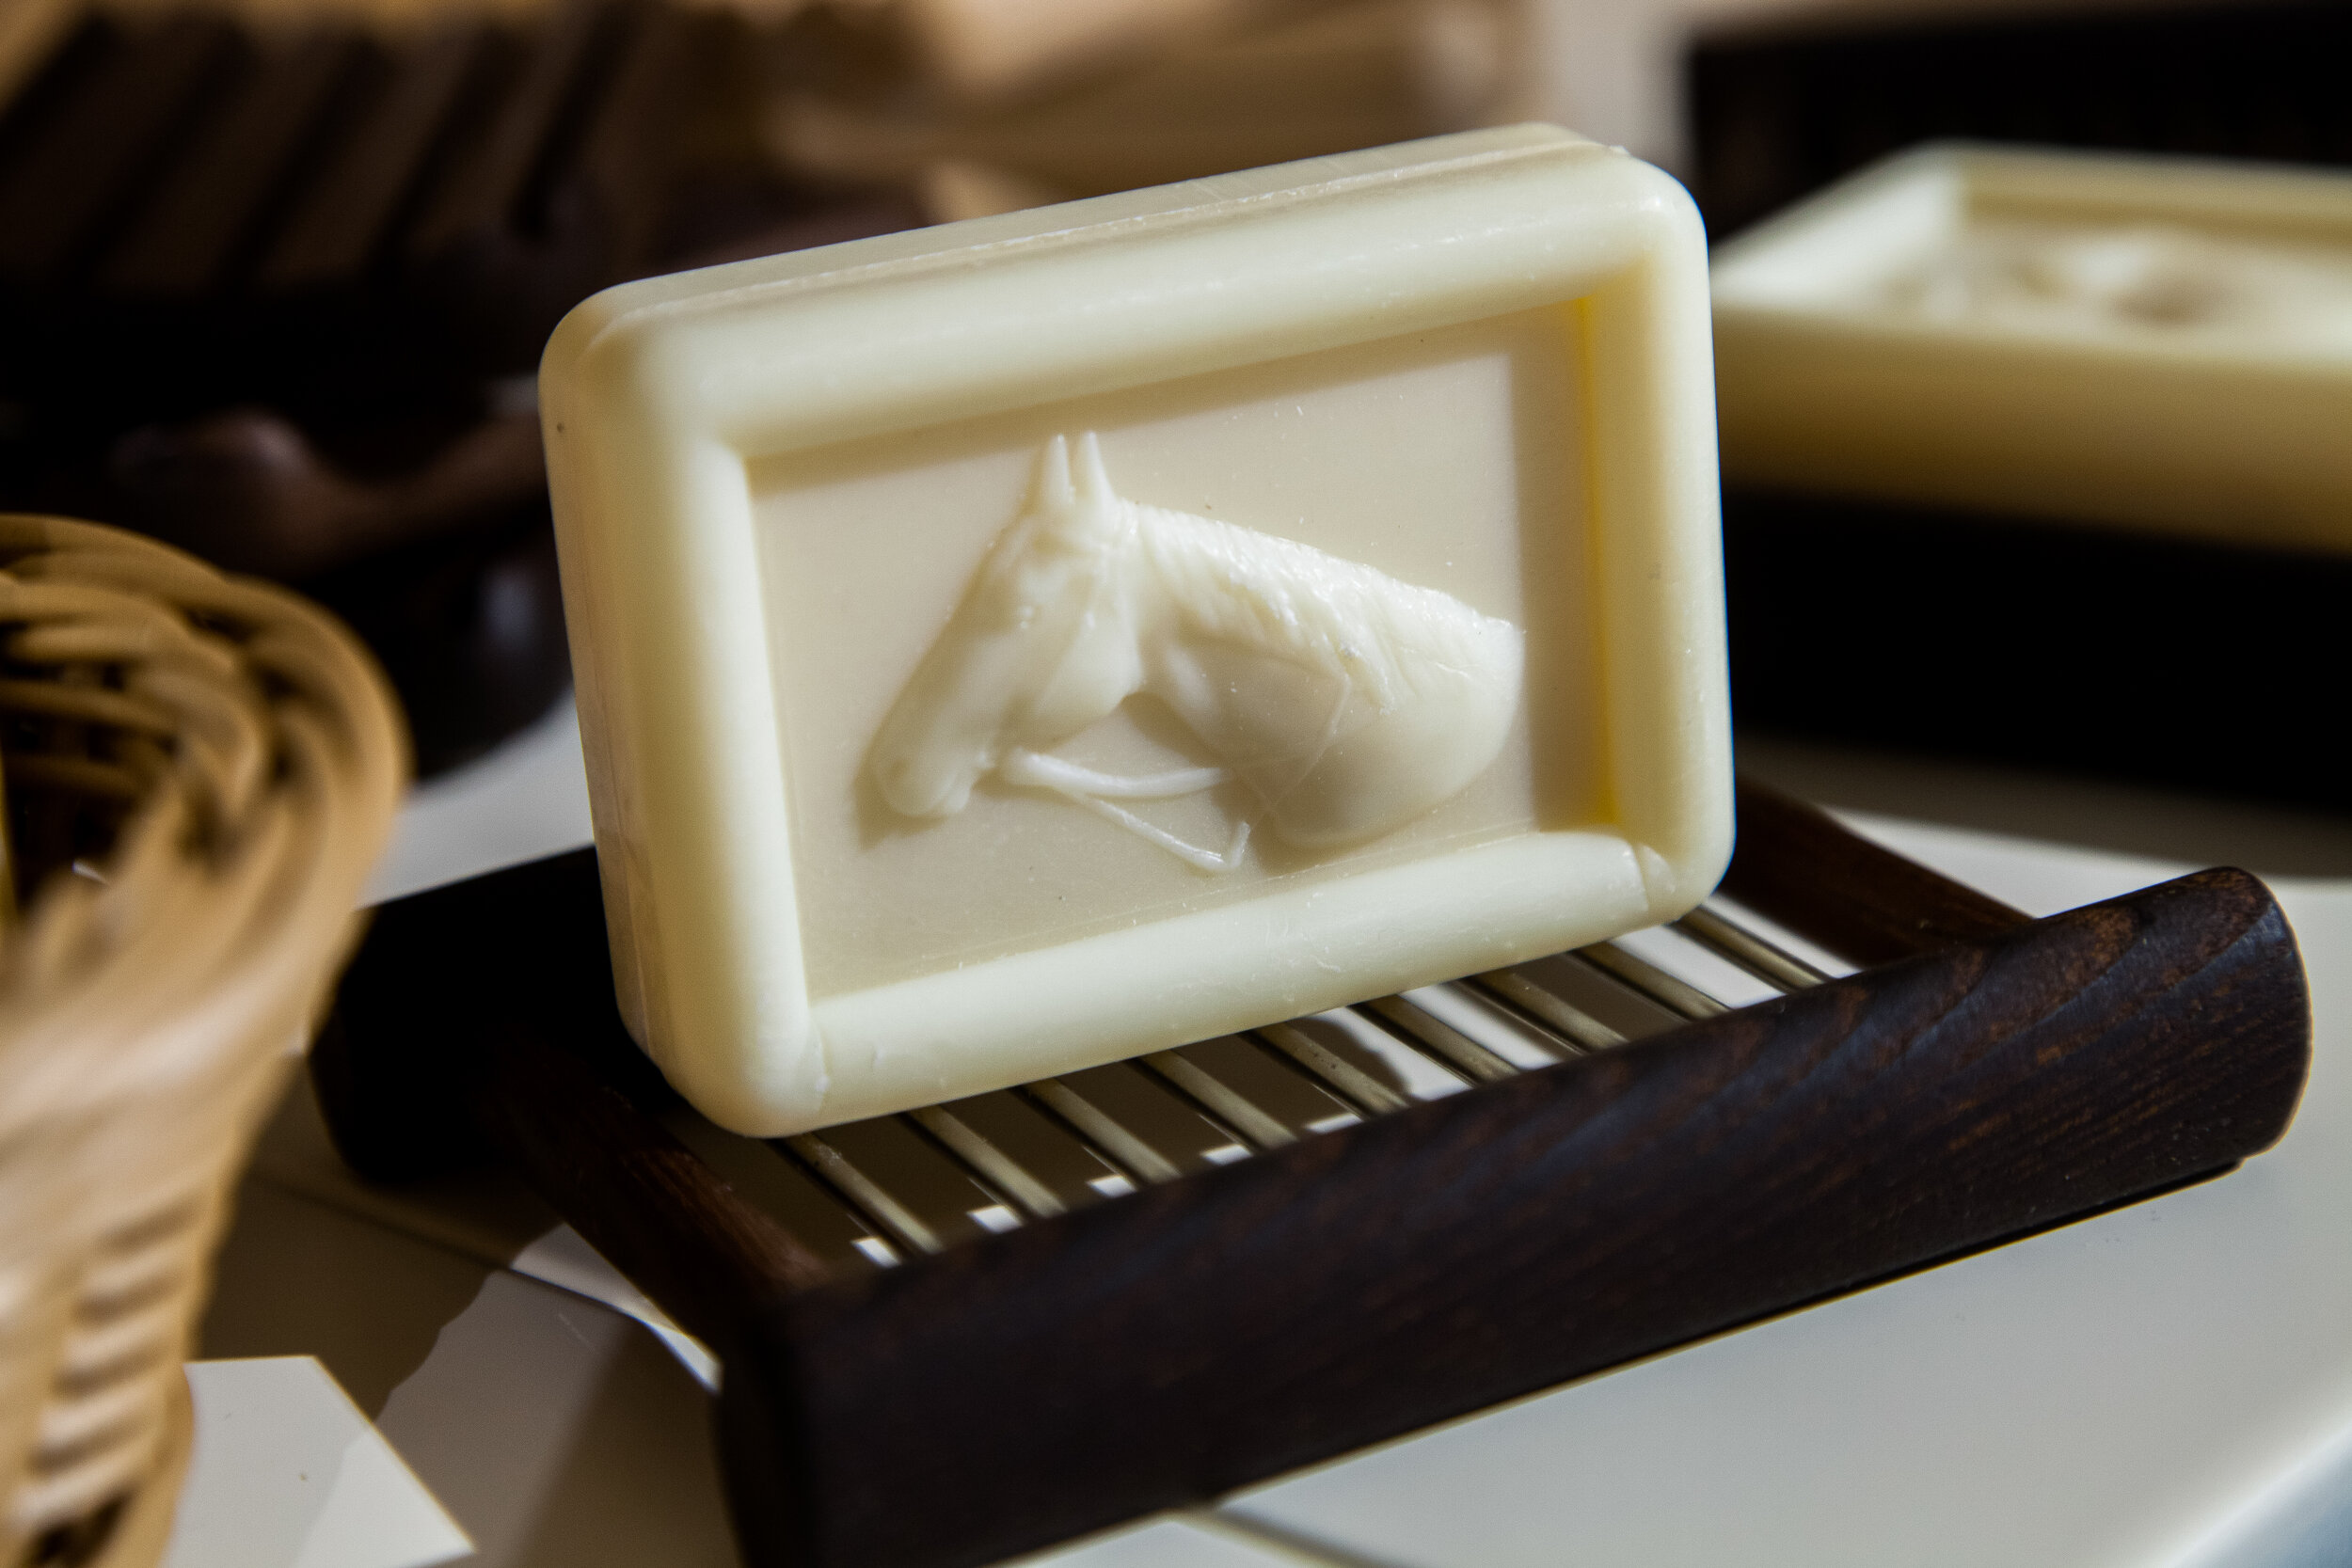 Exquisite bar of soap